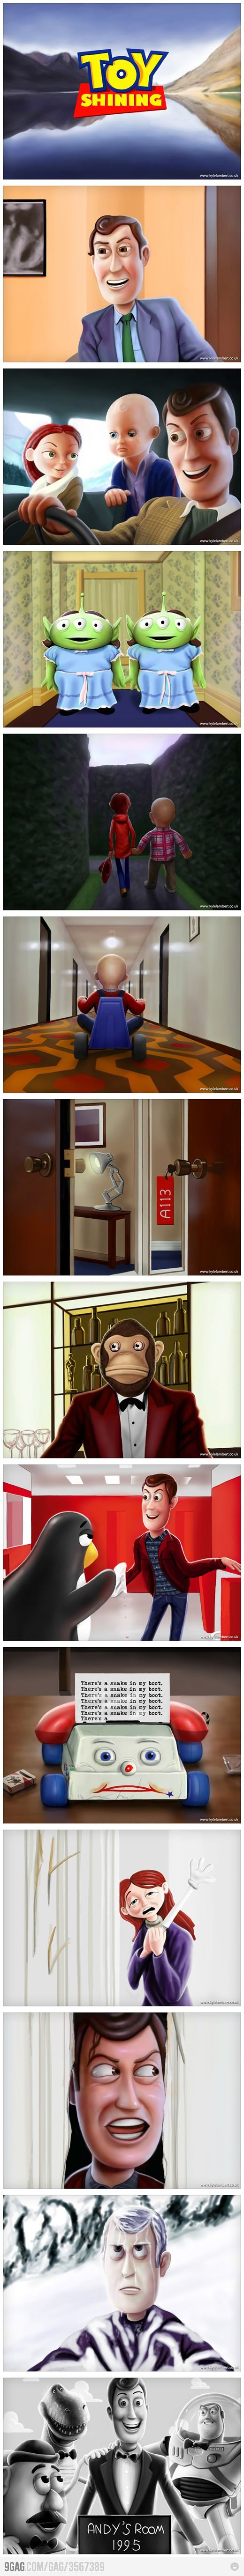 Toy Story x The Shining: Meme Funny, 9Gag Funny, Funny Humor, Lol Funny Pictures, Funny Stuff, Movie, Toys Shinee, So Funny, Toys Stories